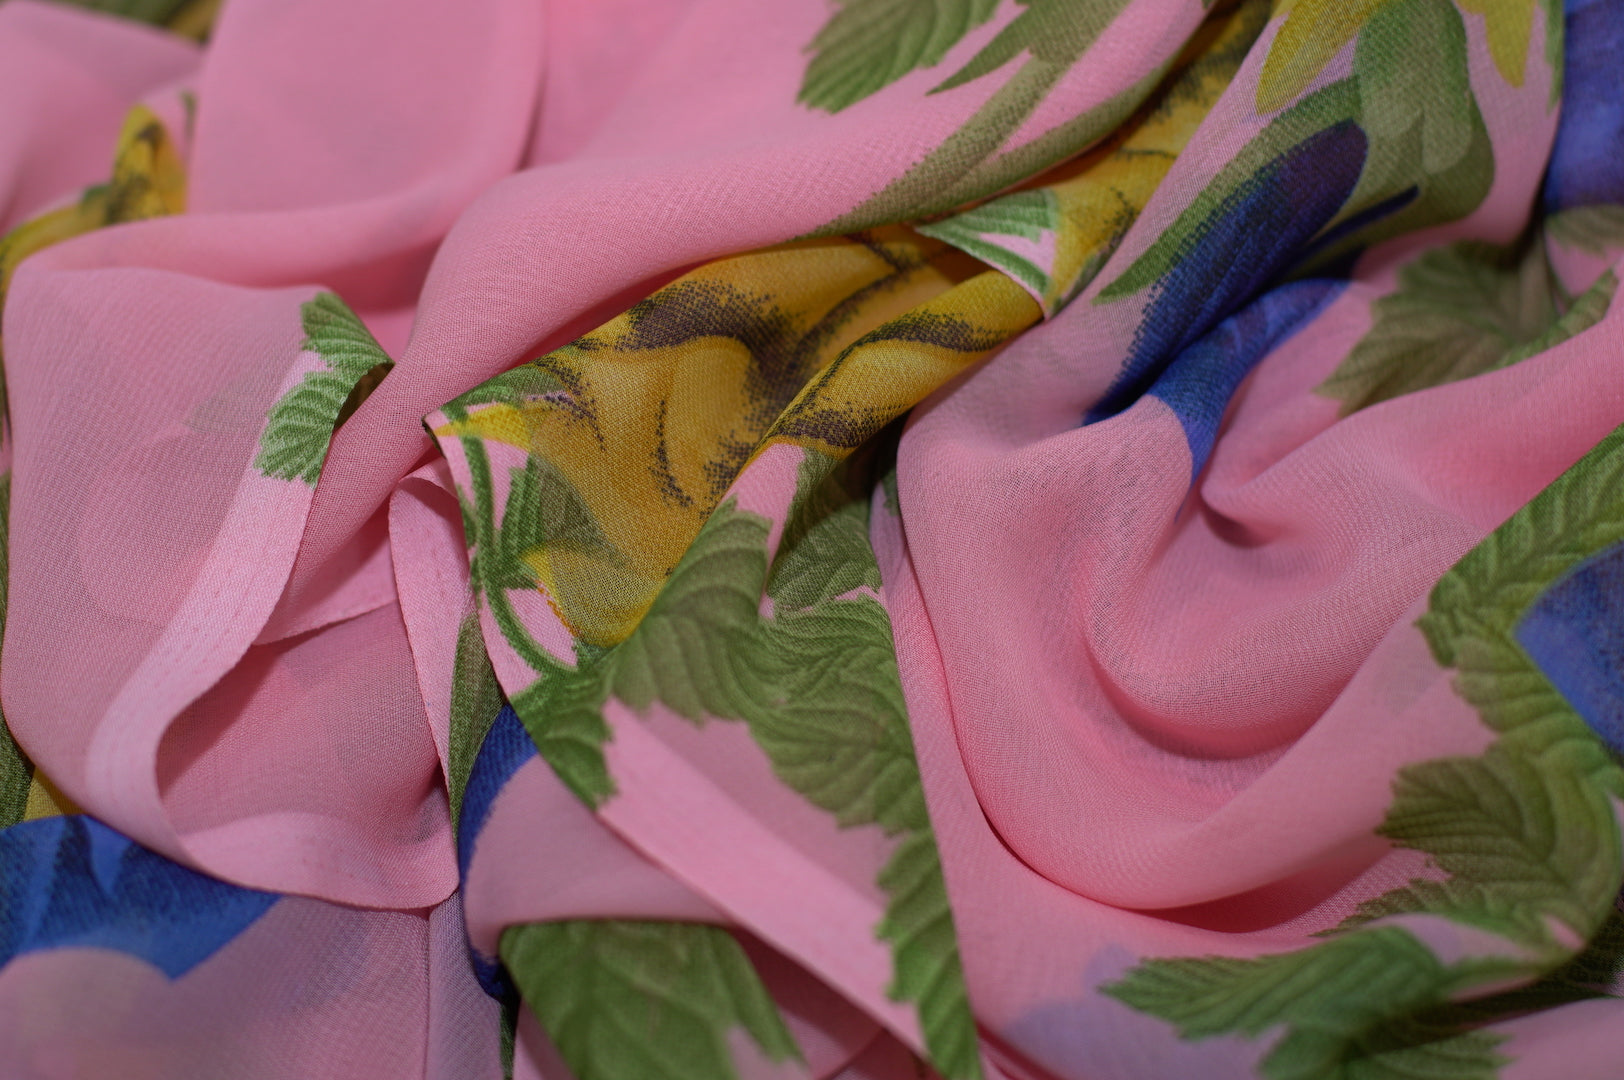 Zxq710 Soft Pink Chiffon With Yellow And Blue Flowers Shoxan